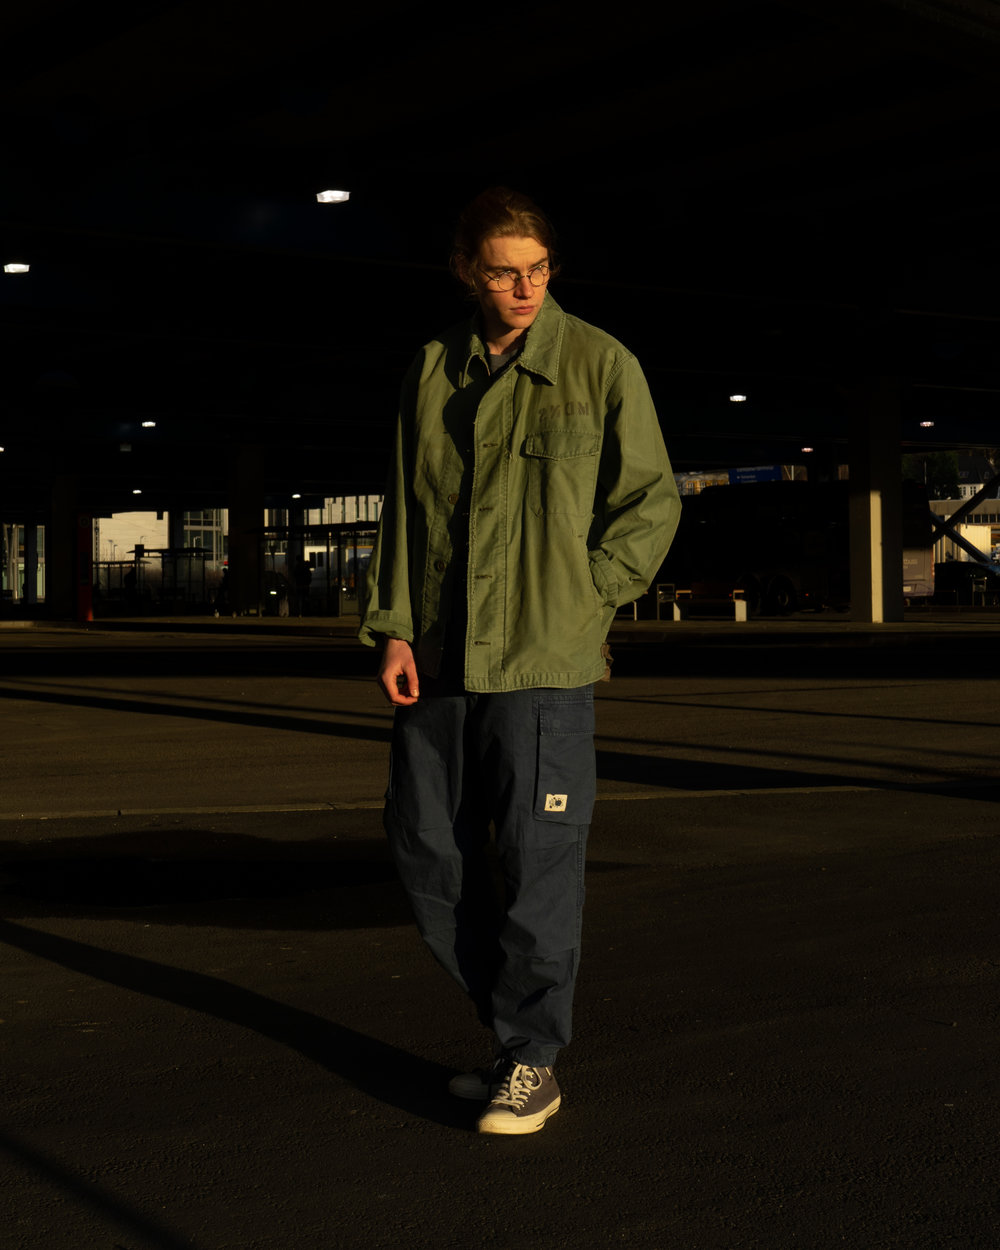 Vintage Processed Deck Jacket, Washed Embroidery Tee, Washed Deck Pants.